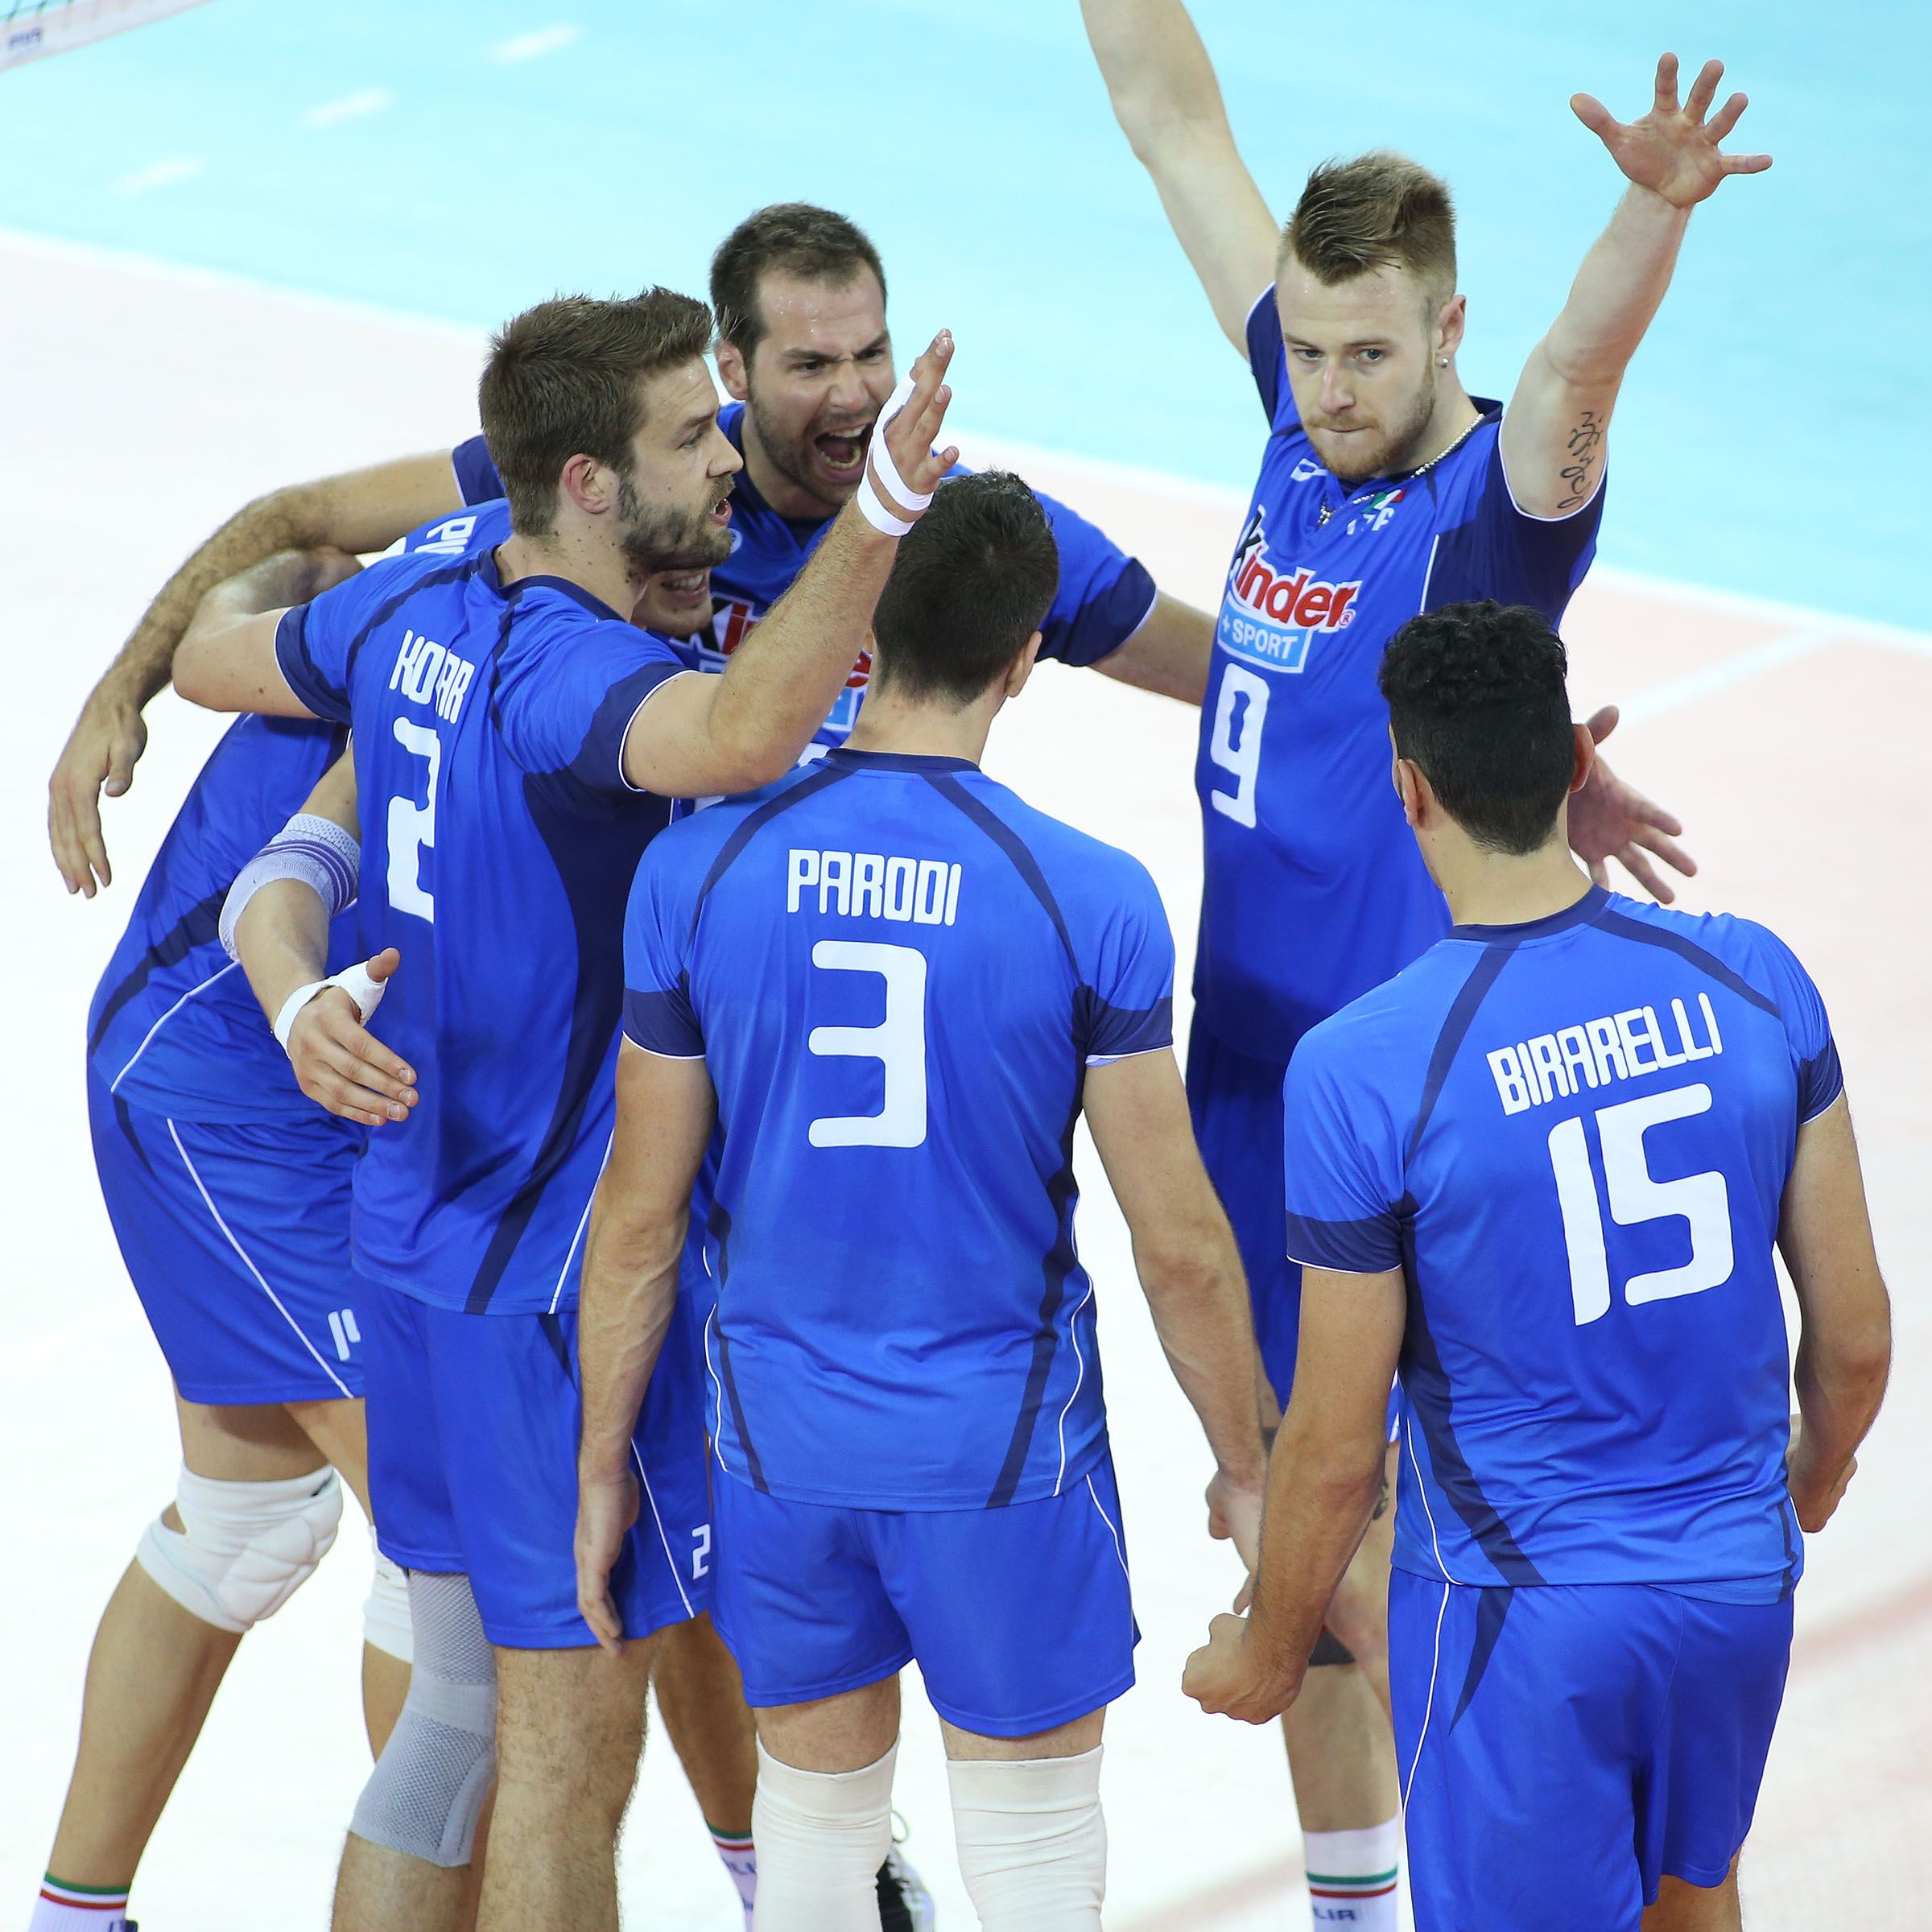 Italy Celebrates Winning The First Set Against Usa In The World League Final Six Match Of The 2014 World League Celebrities League Players